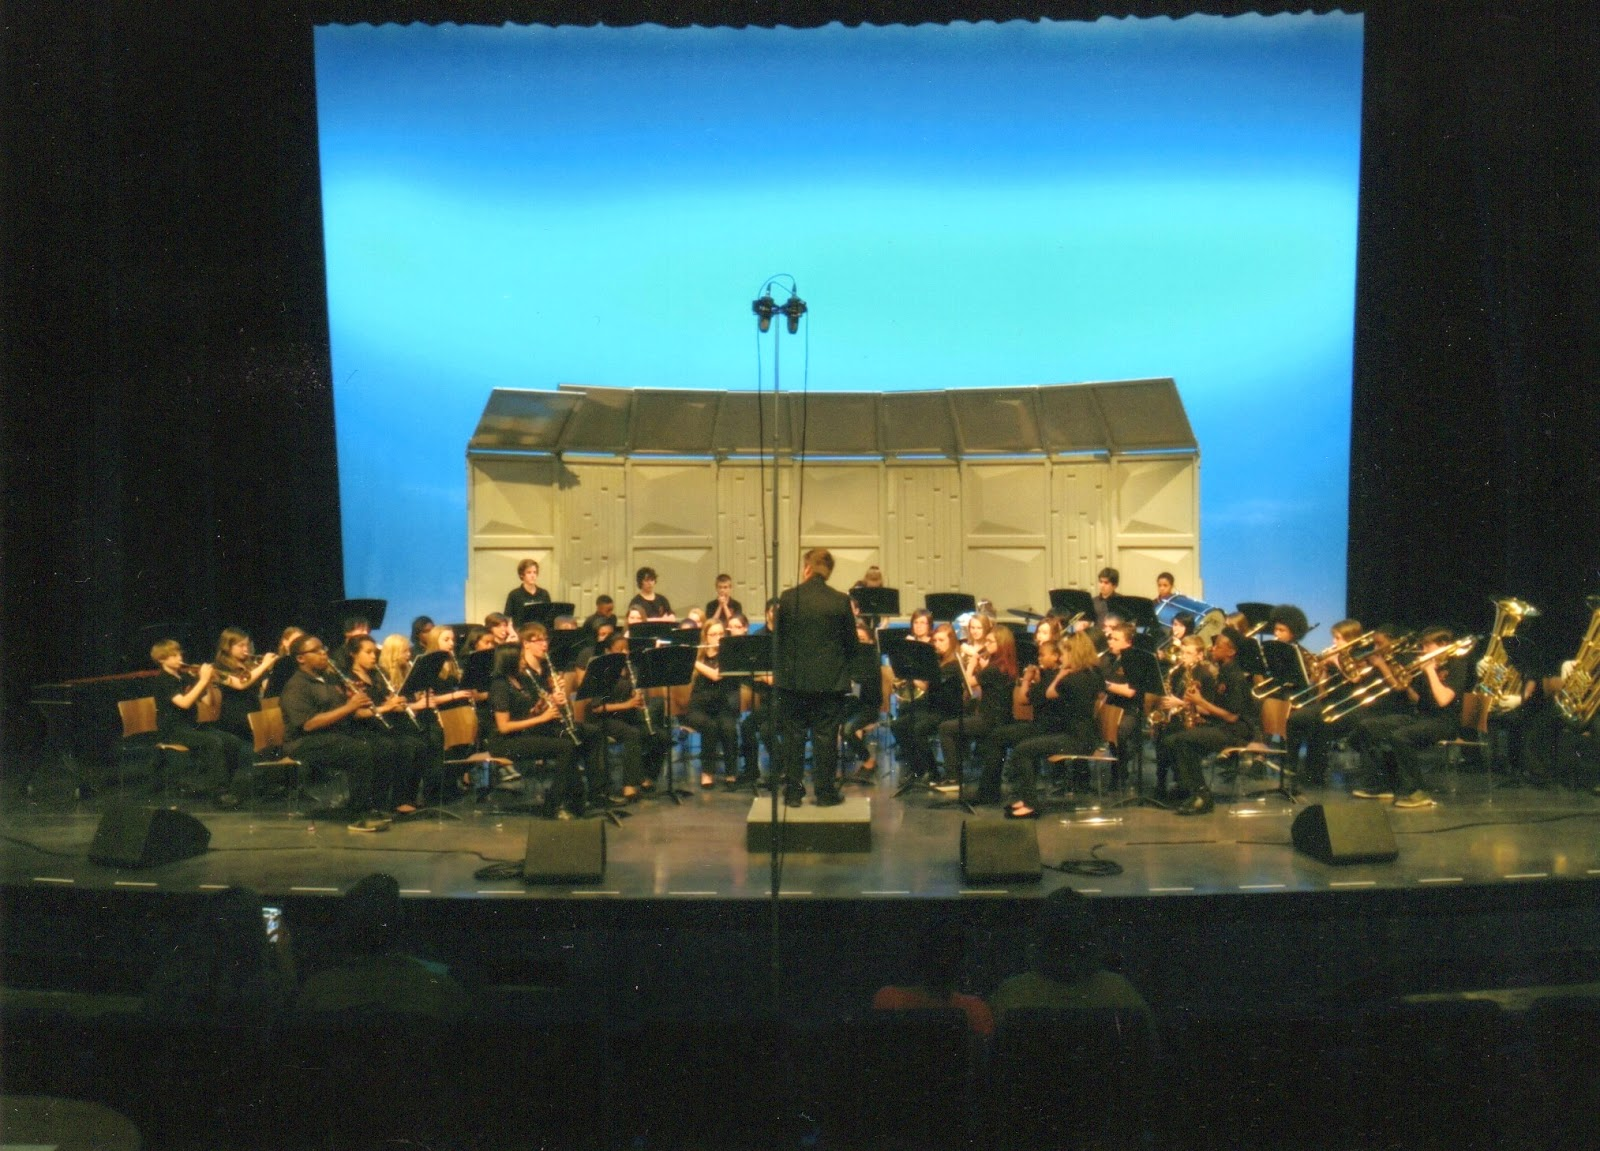 "The Scoggins band musicians performed ""Lassus Trombone"" by Henry  Fillmore/Balent, Colliding Visions by Brian Balmages and Arabian Dances by  Roland Barrett."